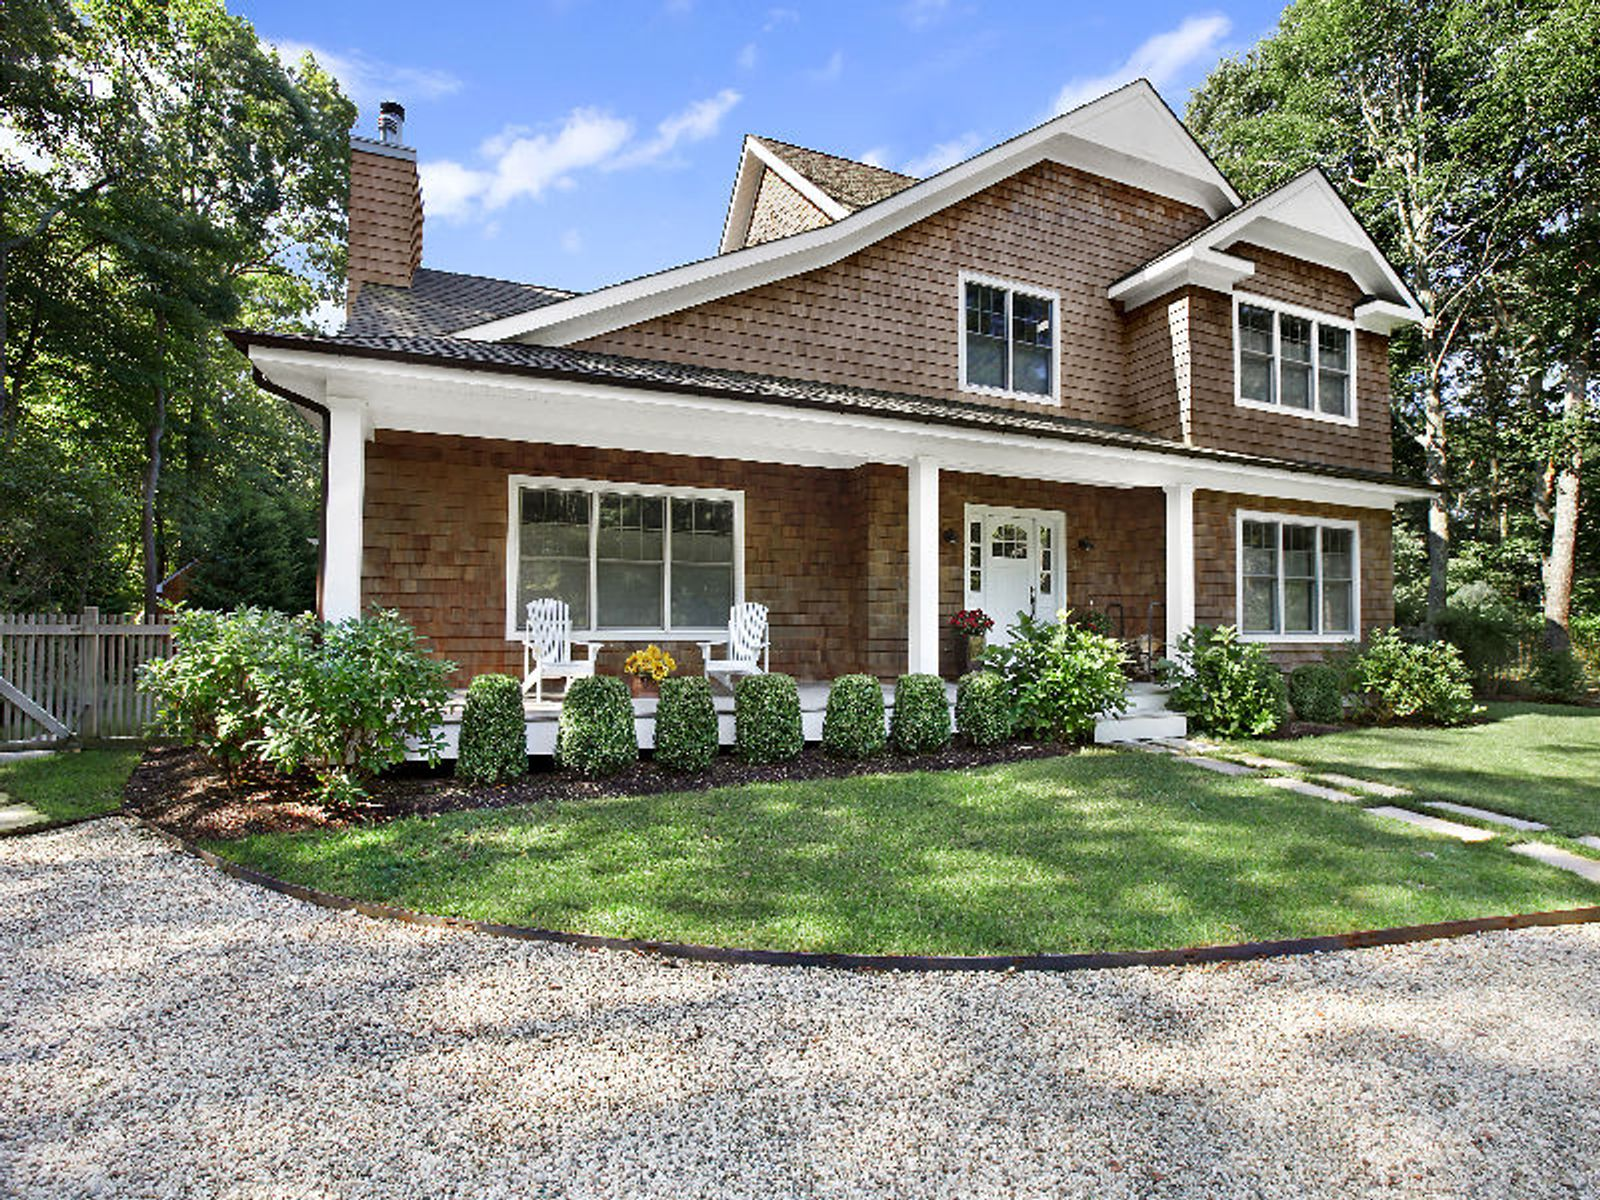 Better Than New!, Southampton NY Single Family Home - Hamptons Real Estate